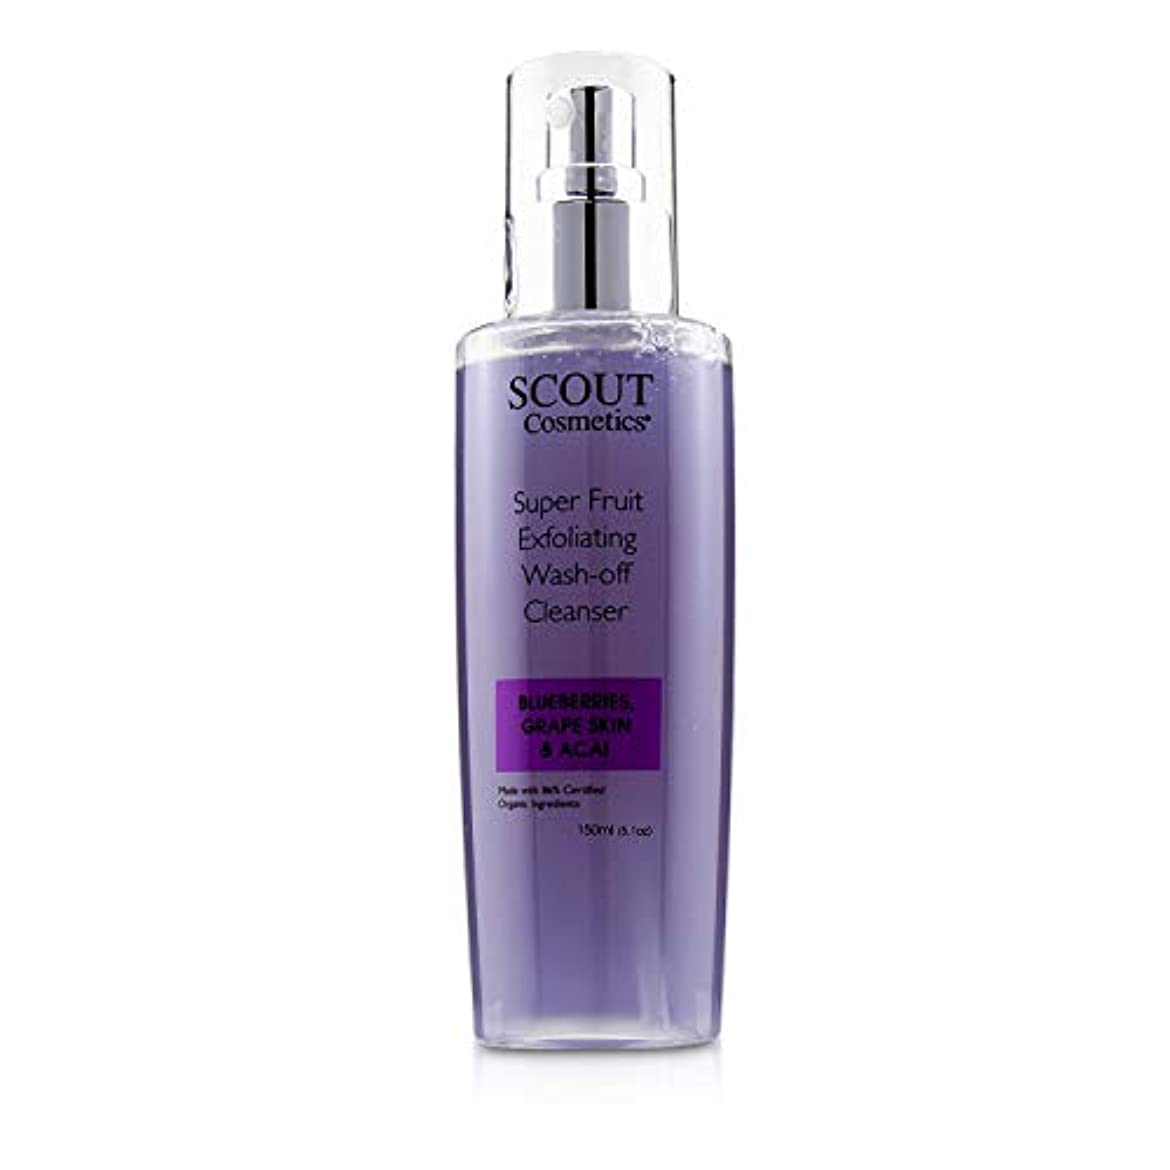 SCOUT Cosmetics Super Fruit Exfoliating Wash-Off Cleanser with Blueberries, Grape Skin & Acai 150ml/5.1oz並行輸入品